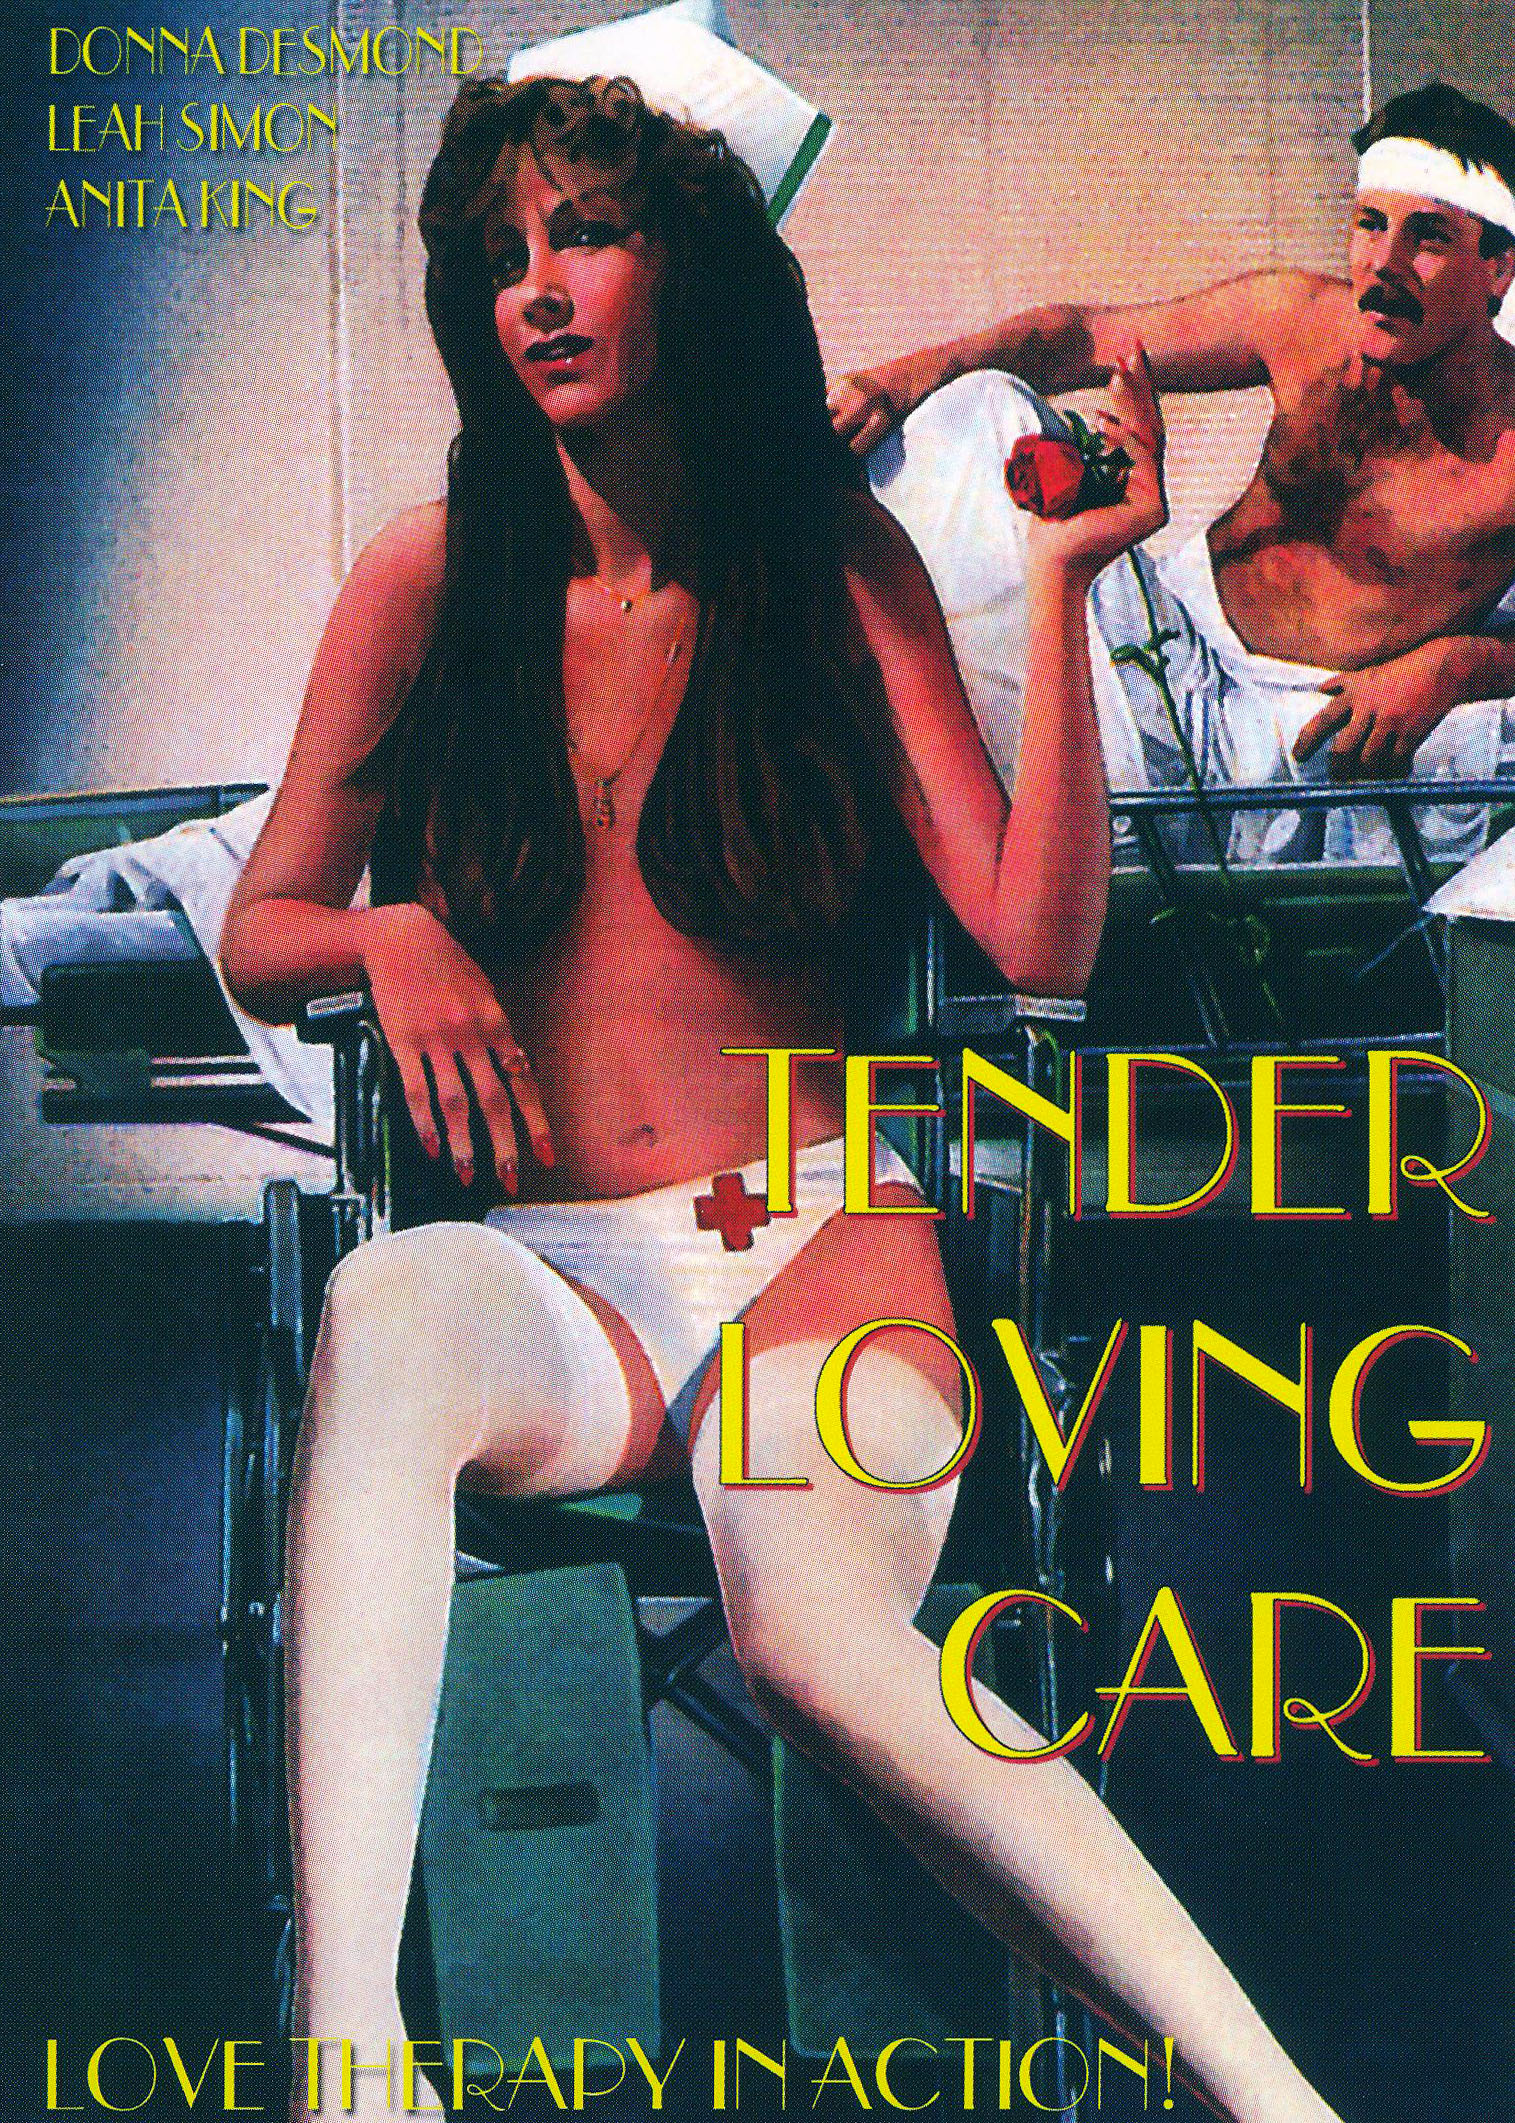 Tender loving care - definition of tender loving care by